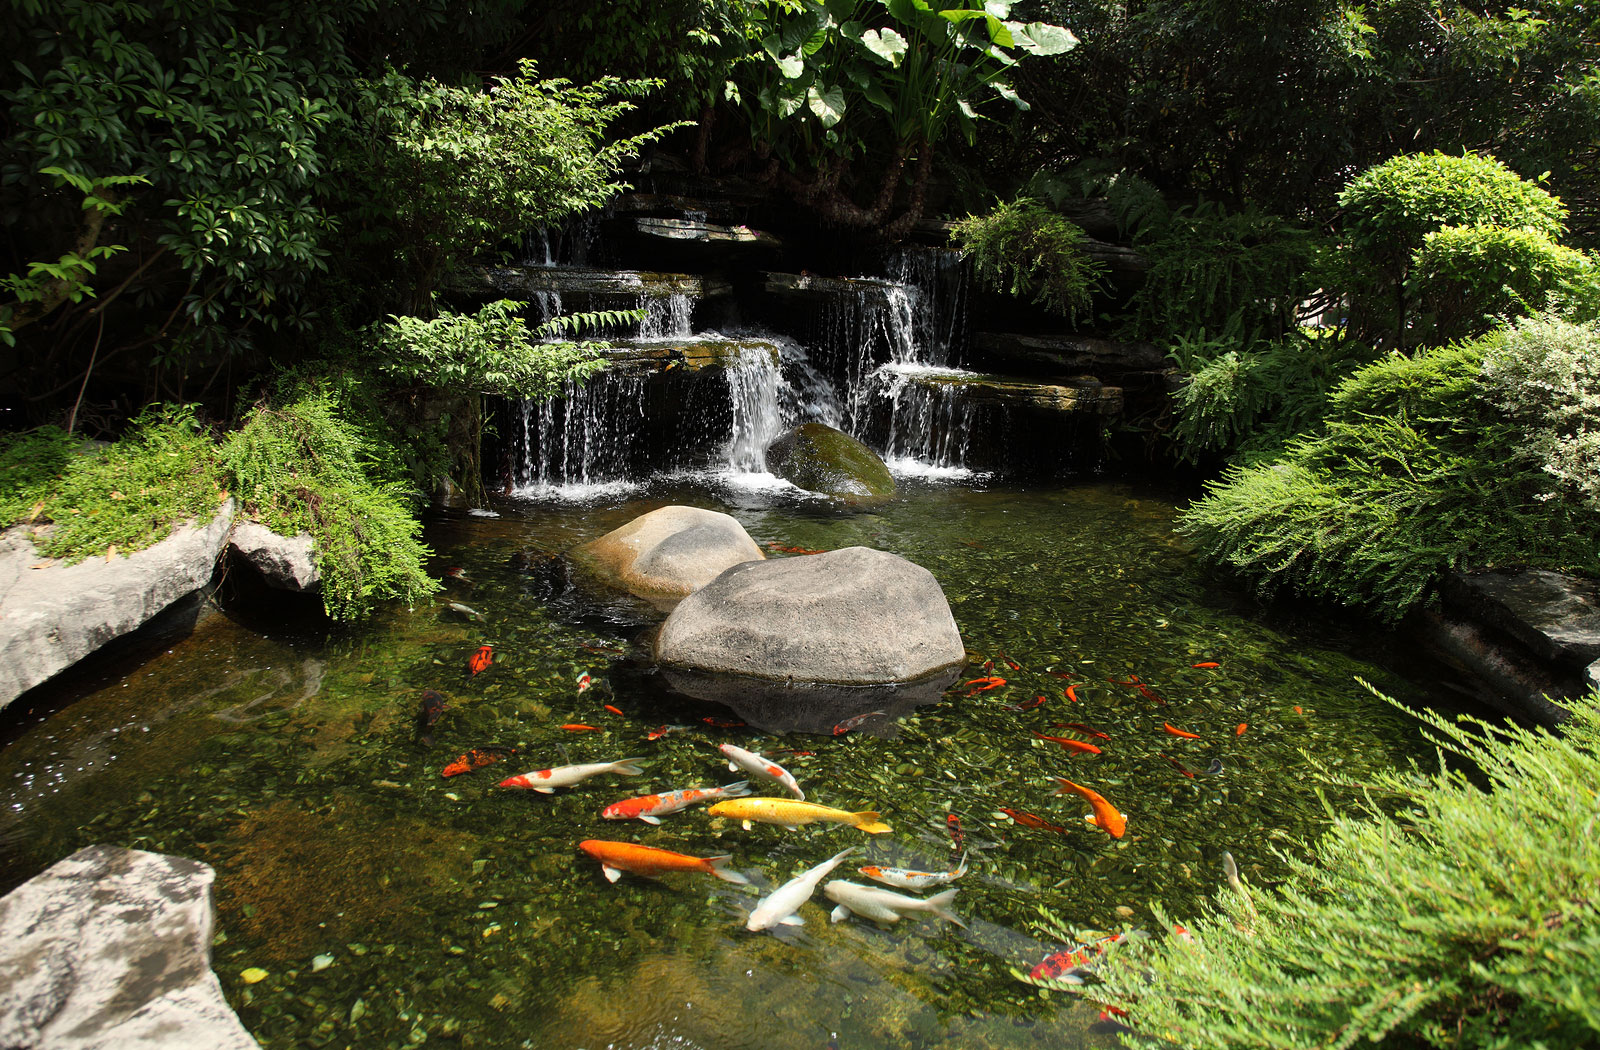 Albany plattsburgh burlington vt outdoor water gardens for Japan koi fish pond